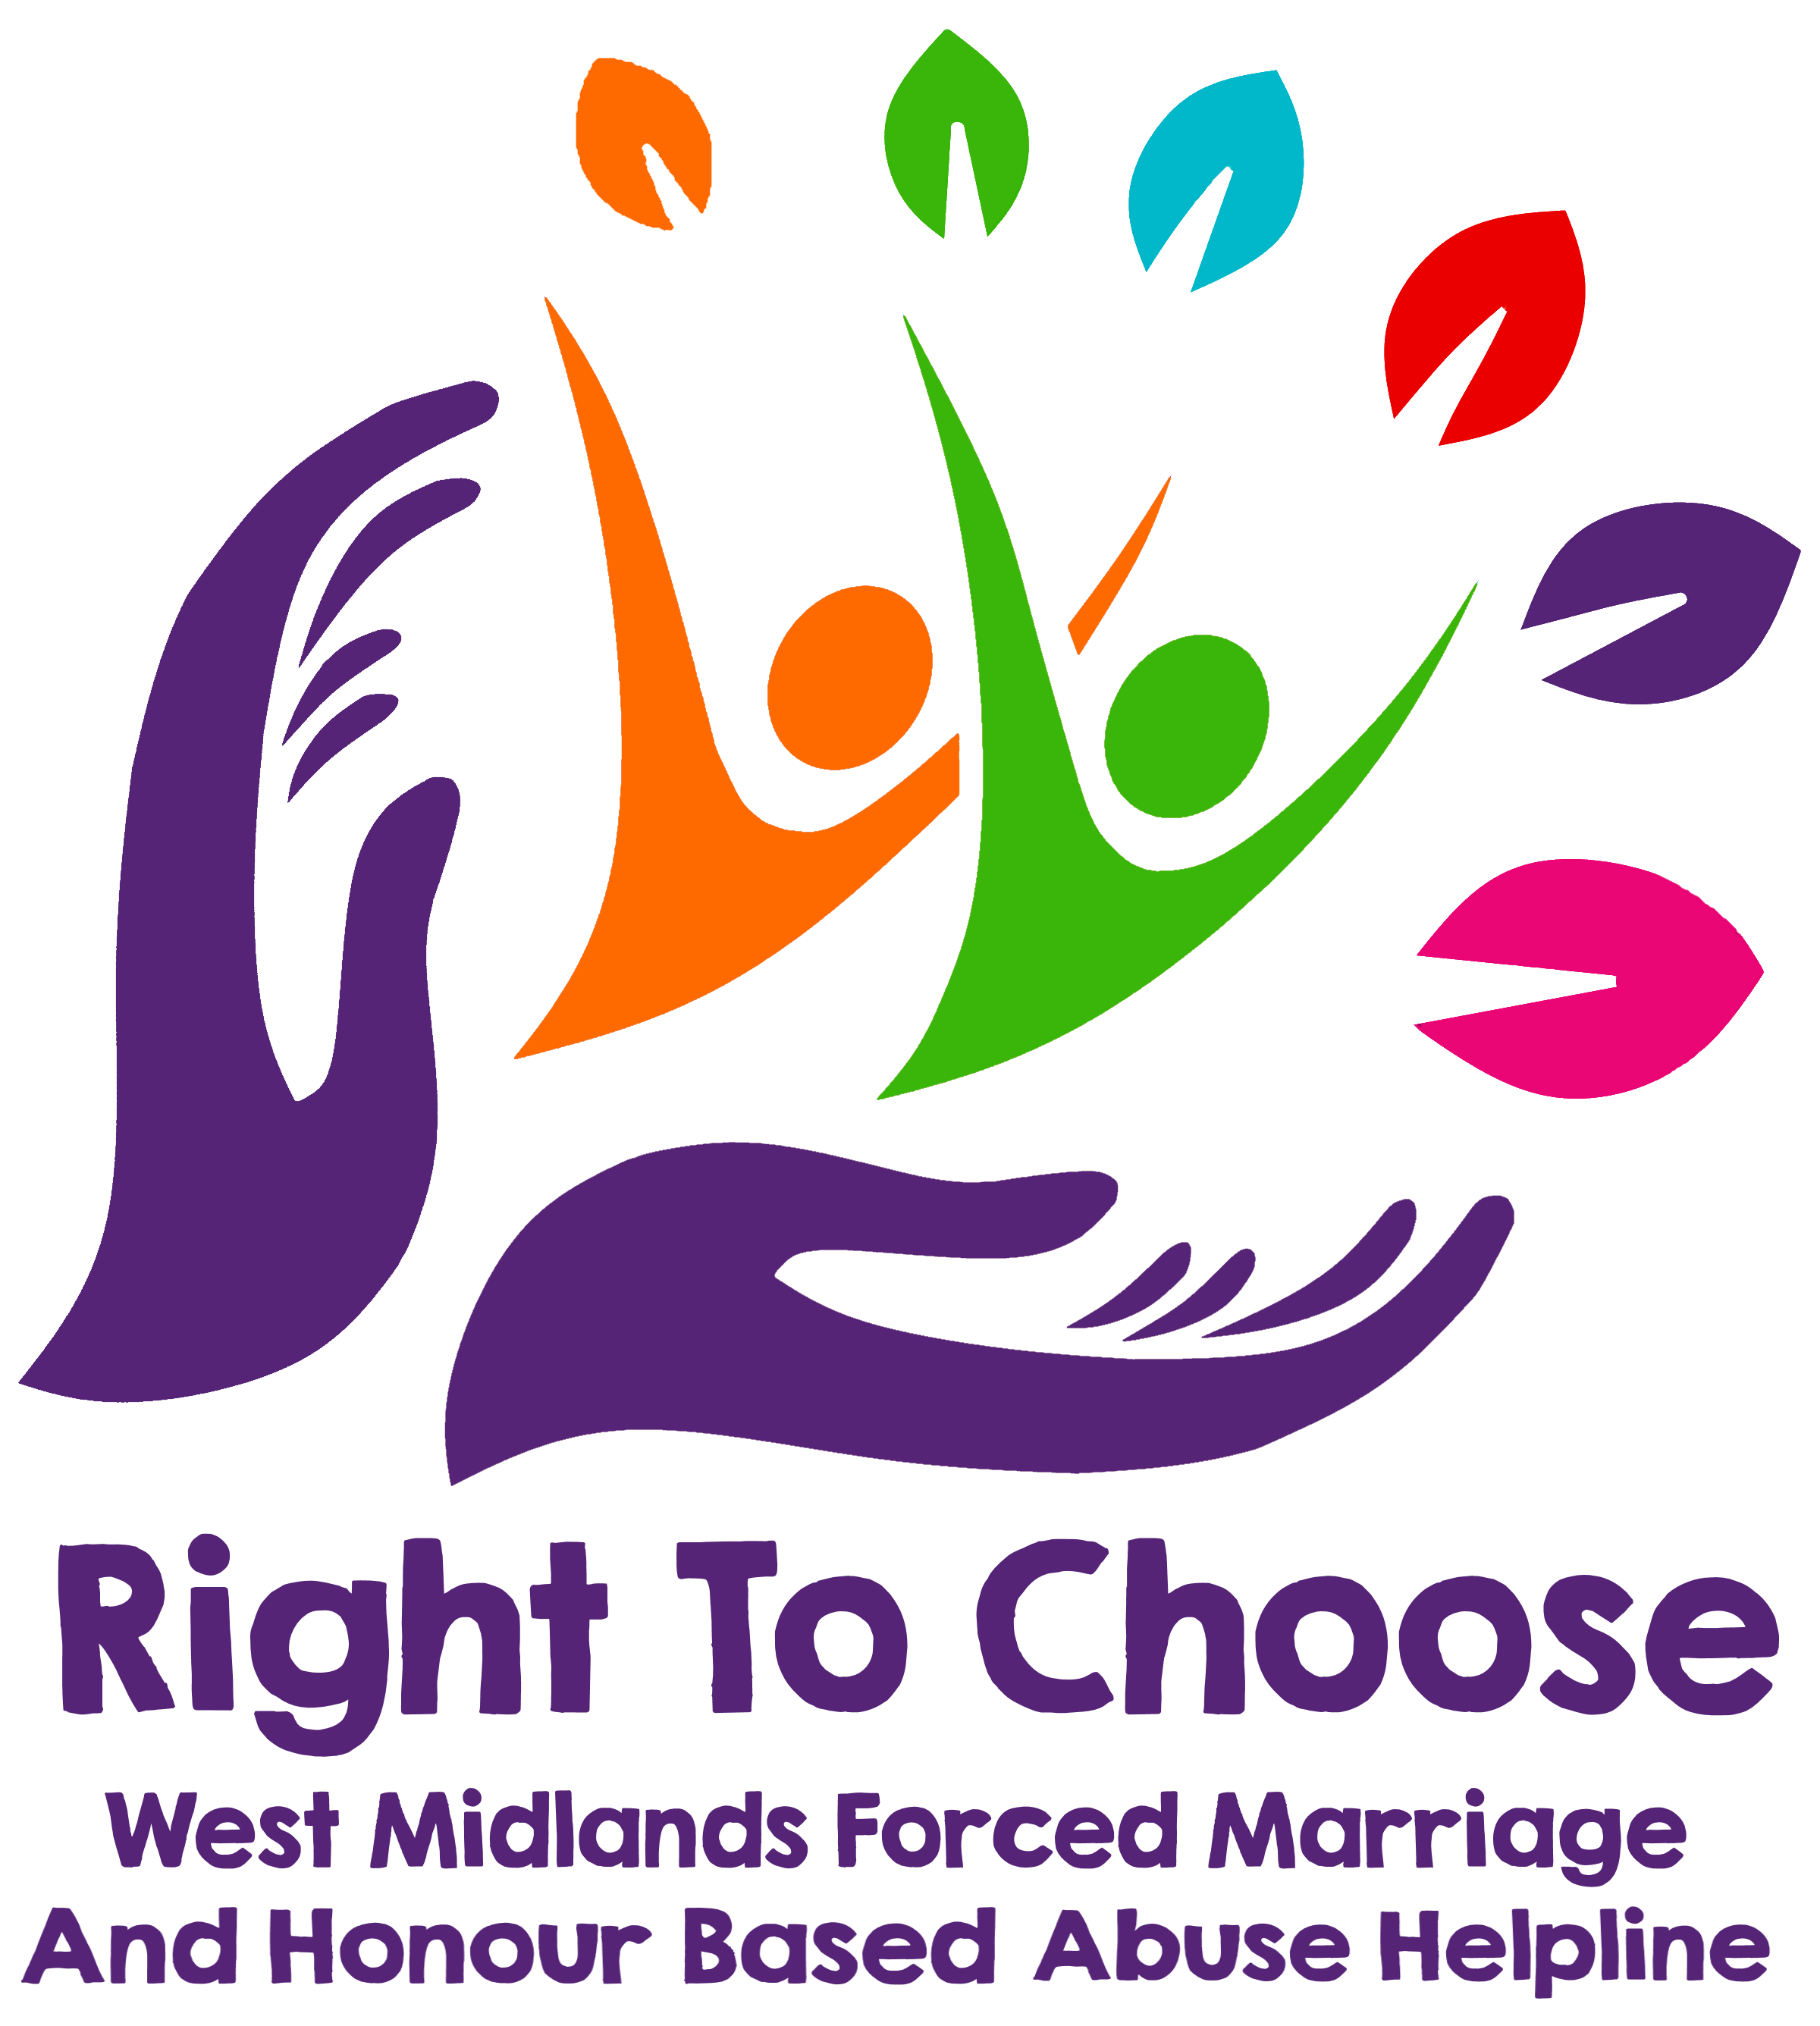 West Midl&s Forced Marriage & Honour Based Abuse Helpline